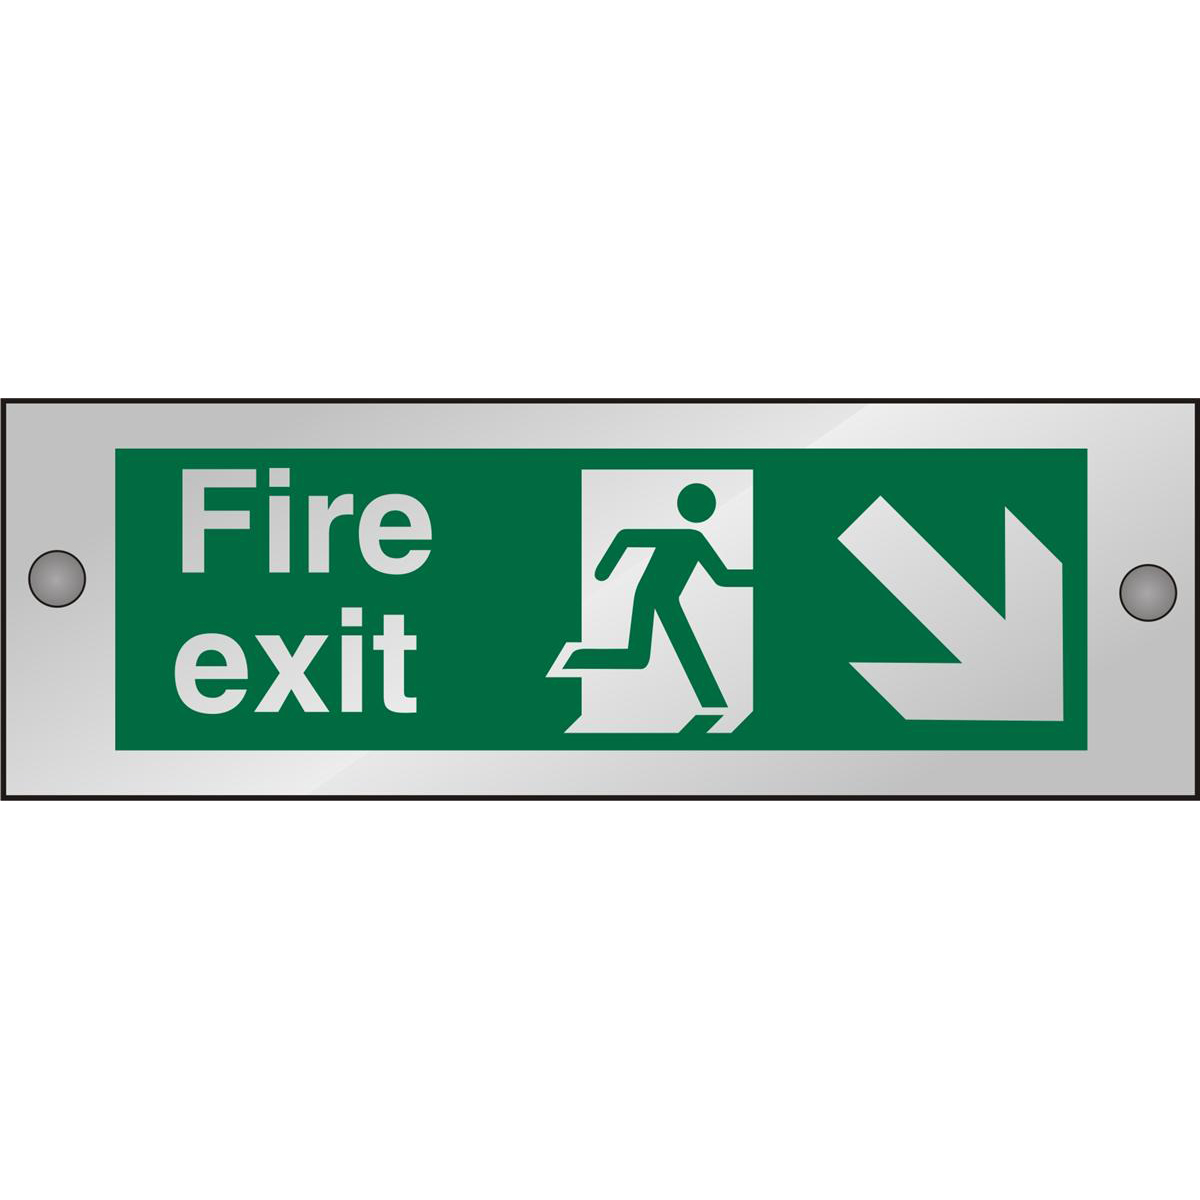 Clear Sign 300x100 5mm FireExit Man Running Right&Arrow brhc Ref CACSP123300x100 Up to 10 Day Leadtime